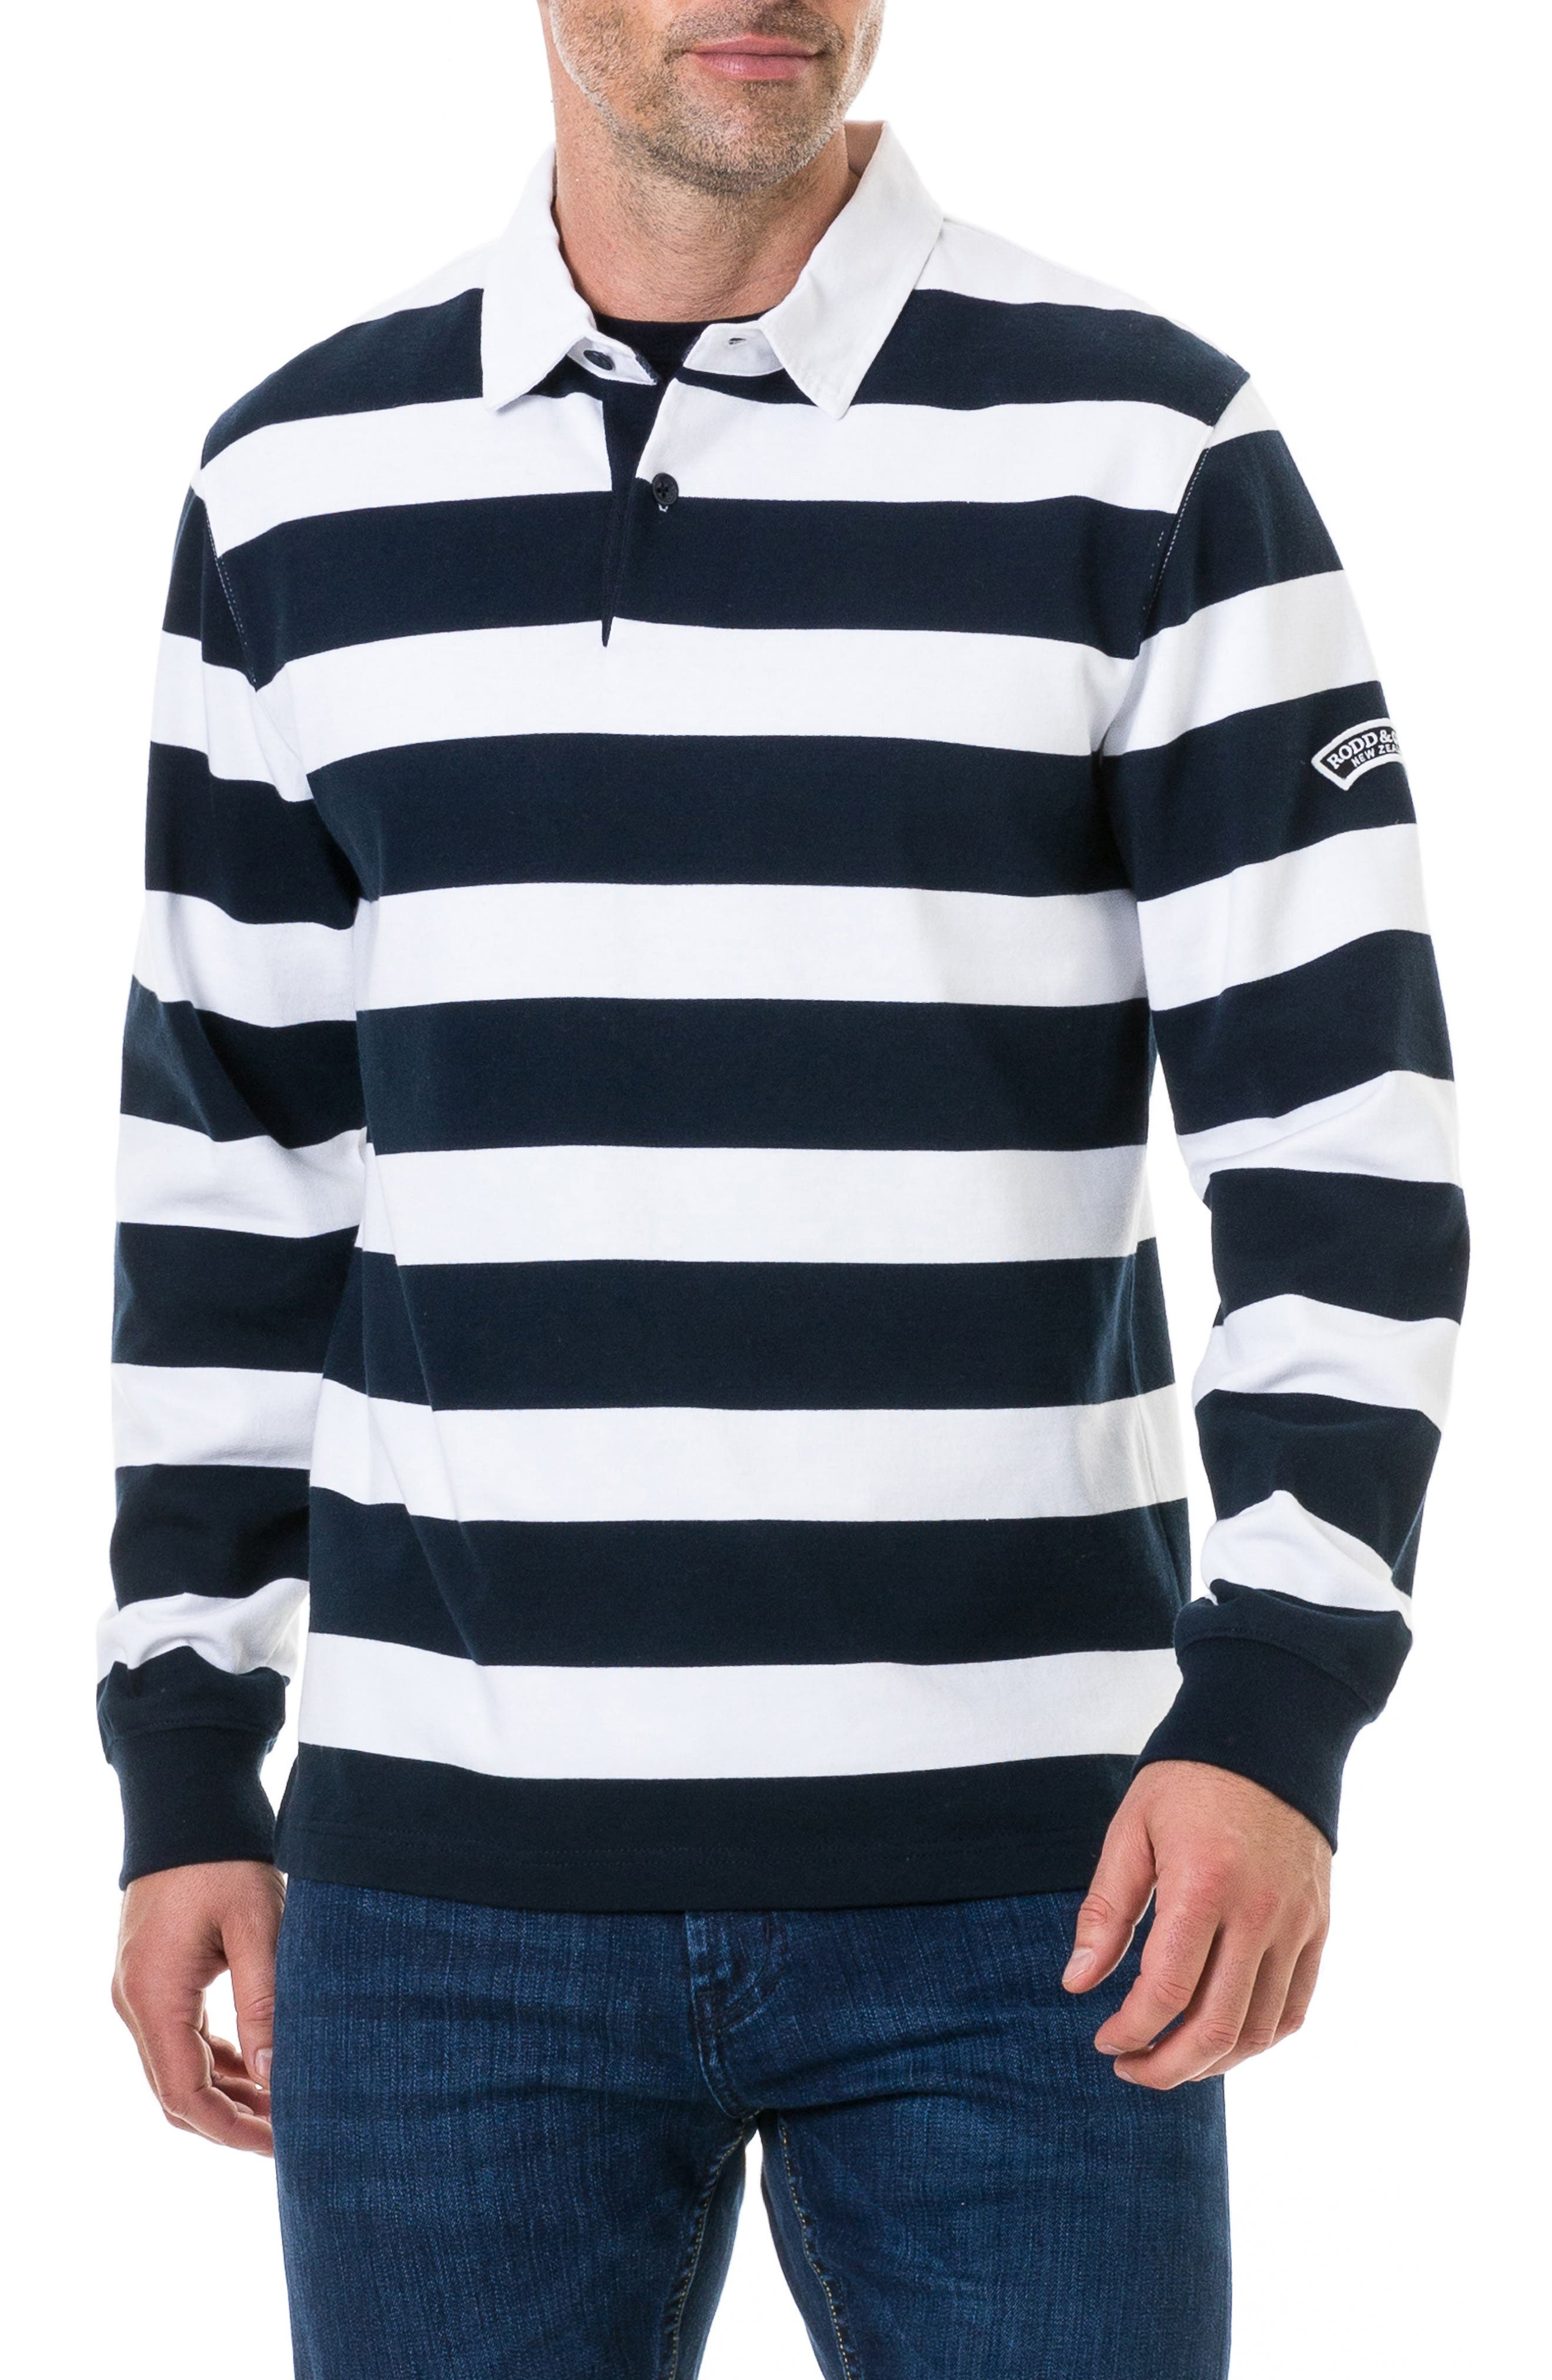 RODD & GUNN Pakington Rugby Stripe Polo, Main, color, MARINE